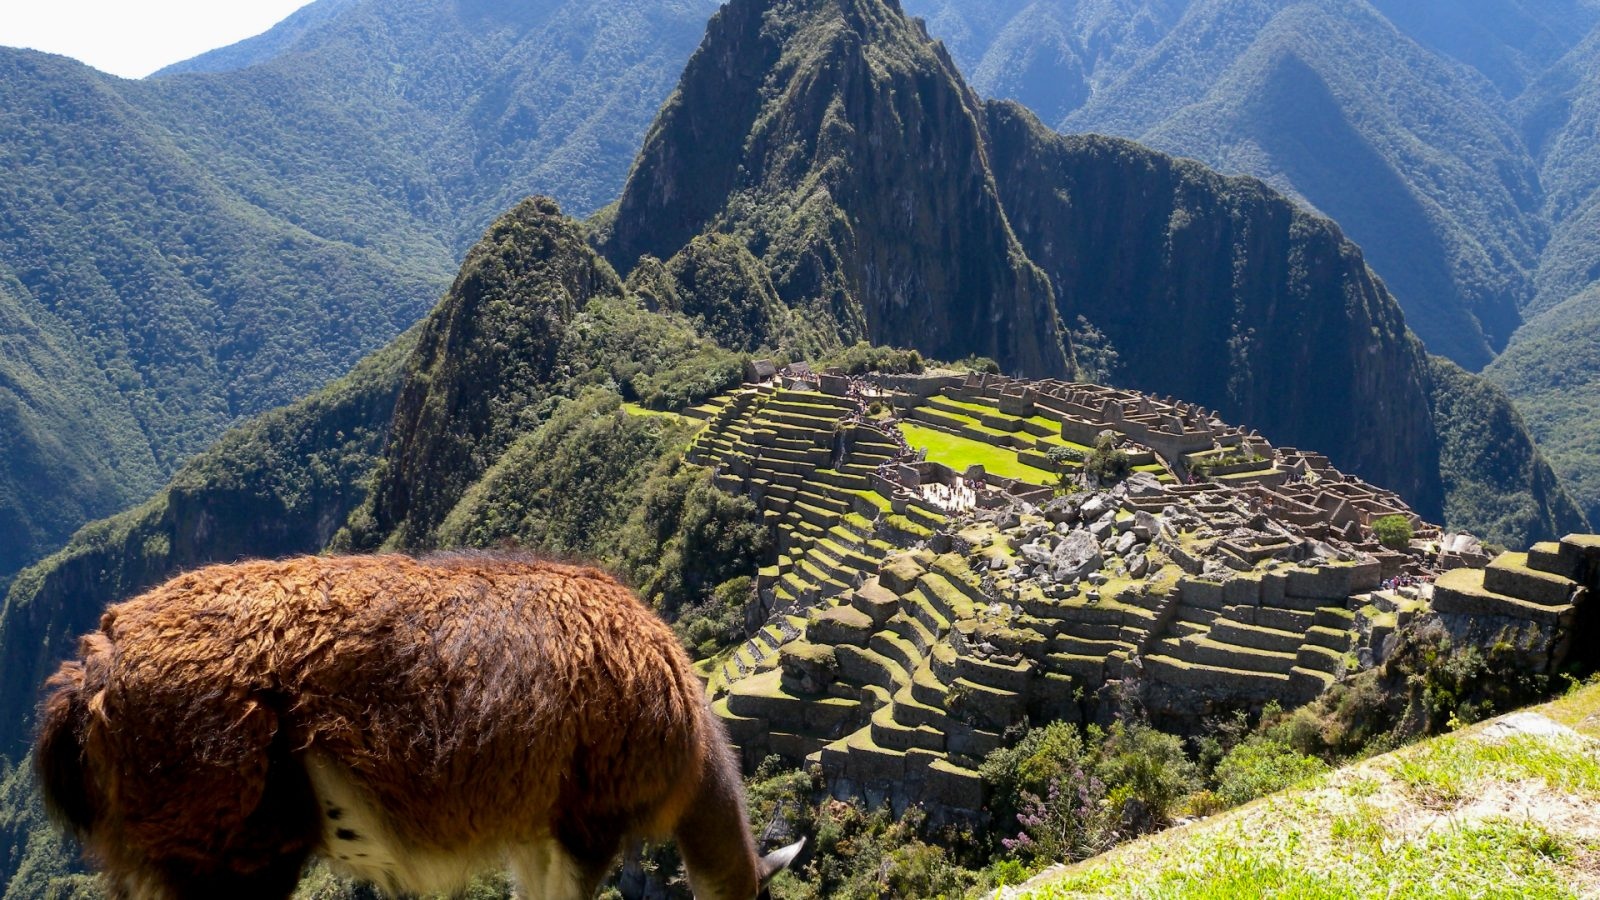 BEST PICTURE OF MACHU PICCHU BY INKA TRAIL TREK